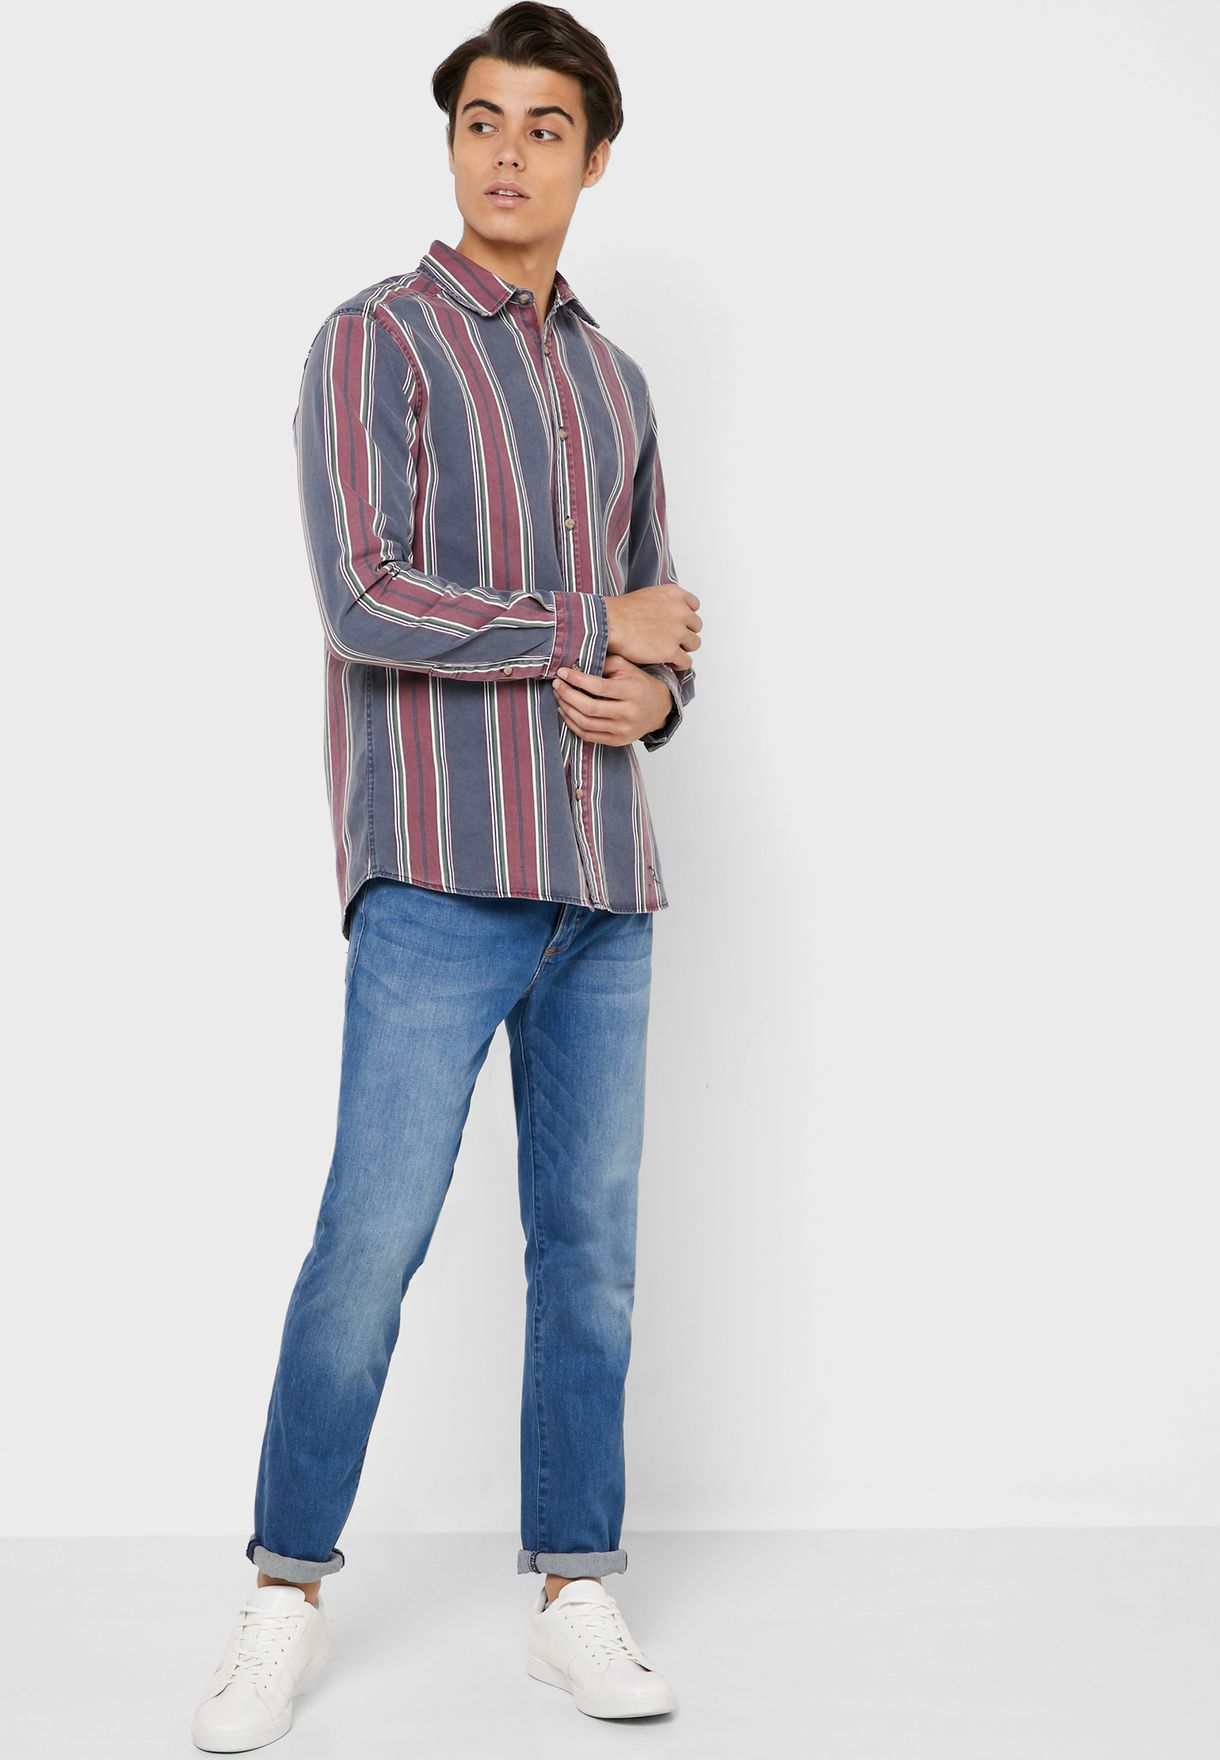 Kobe Striped Slim Fit Shirt